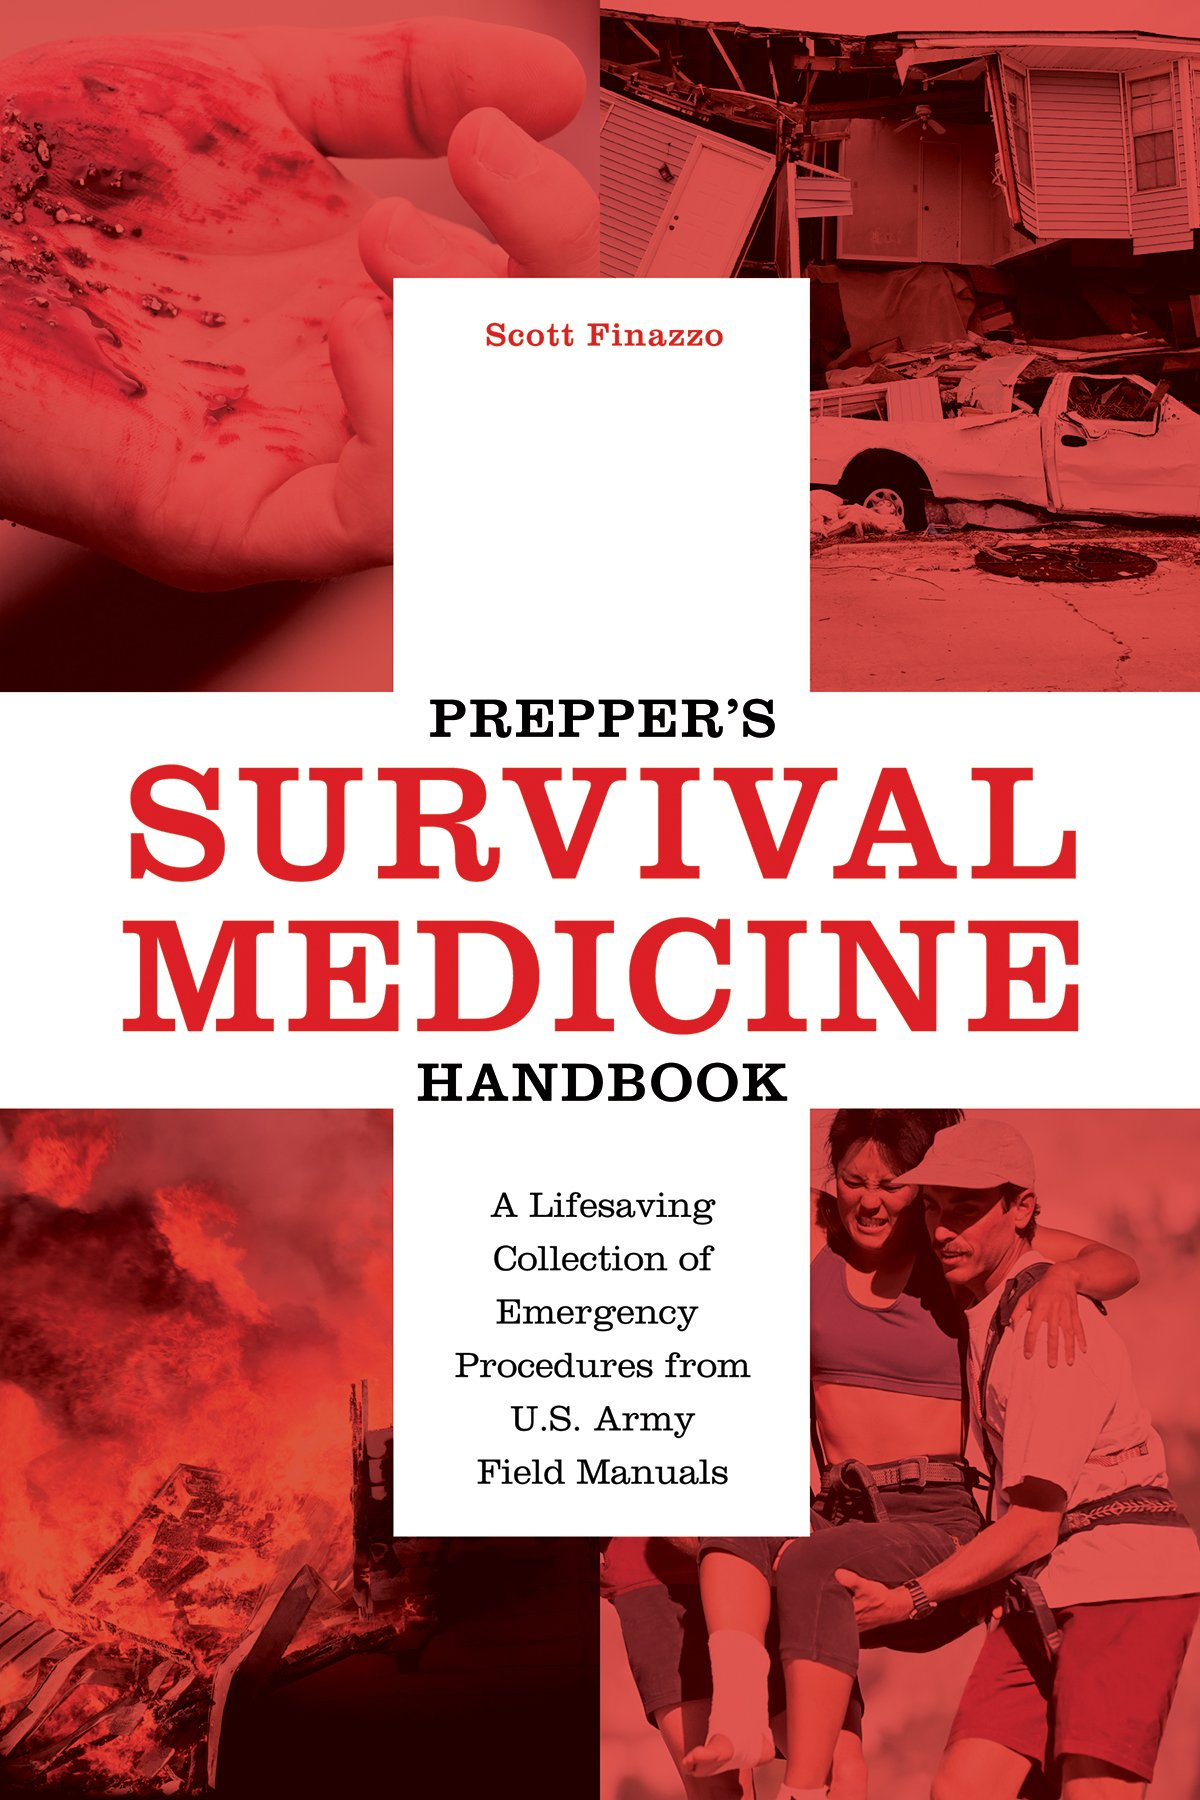 Amazon Preppers Survival Medicine Handbook A Lifesaving Collection Of Emergency Procedures From US Army Field Manuals 9781612435657 Scott